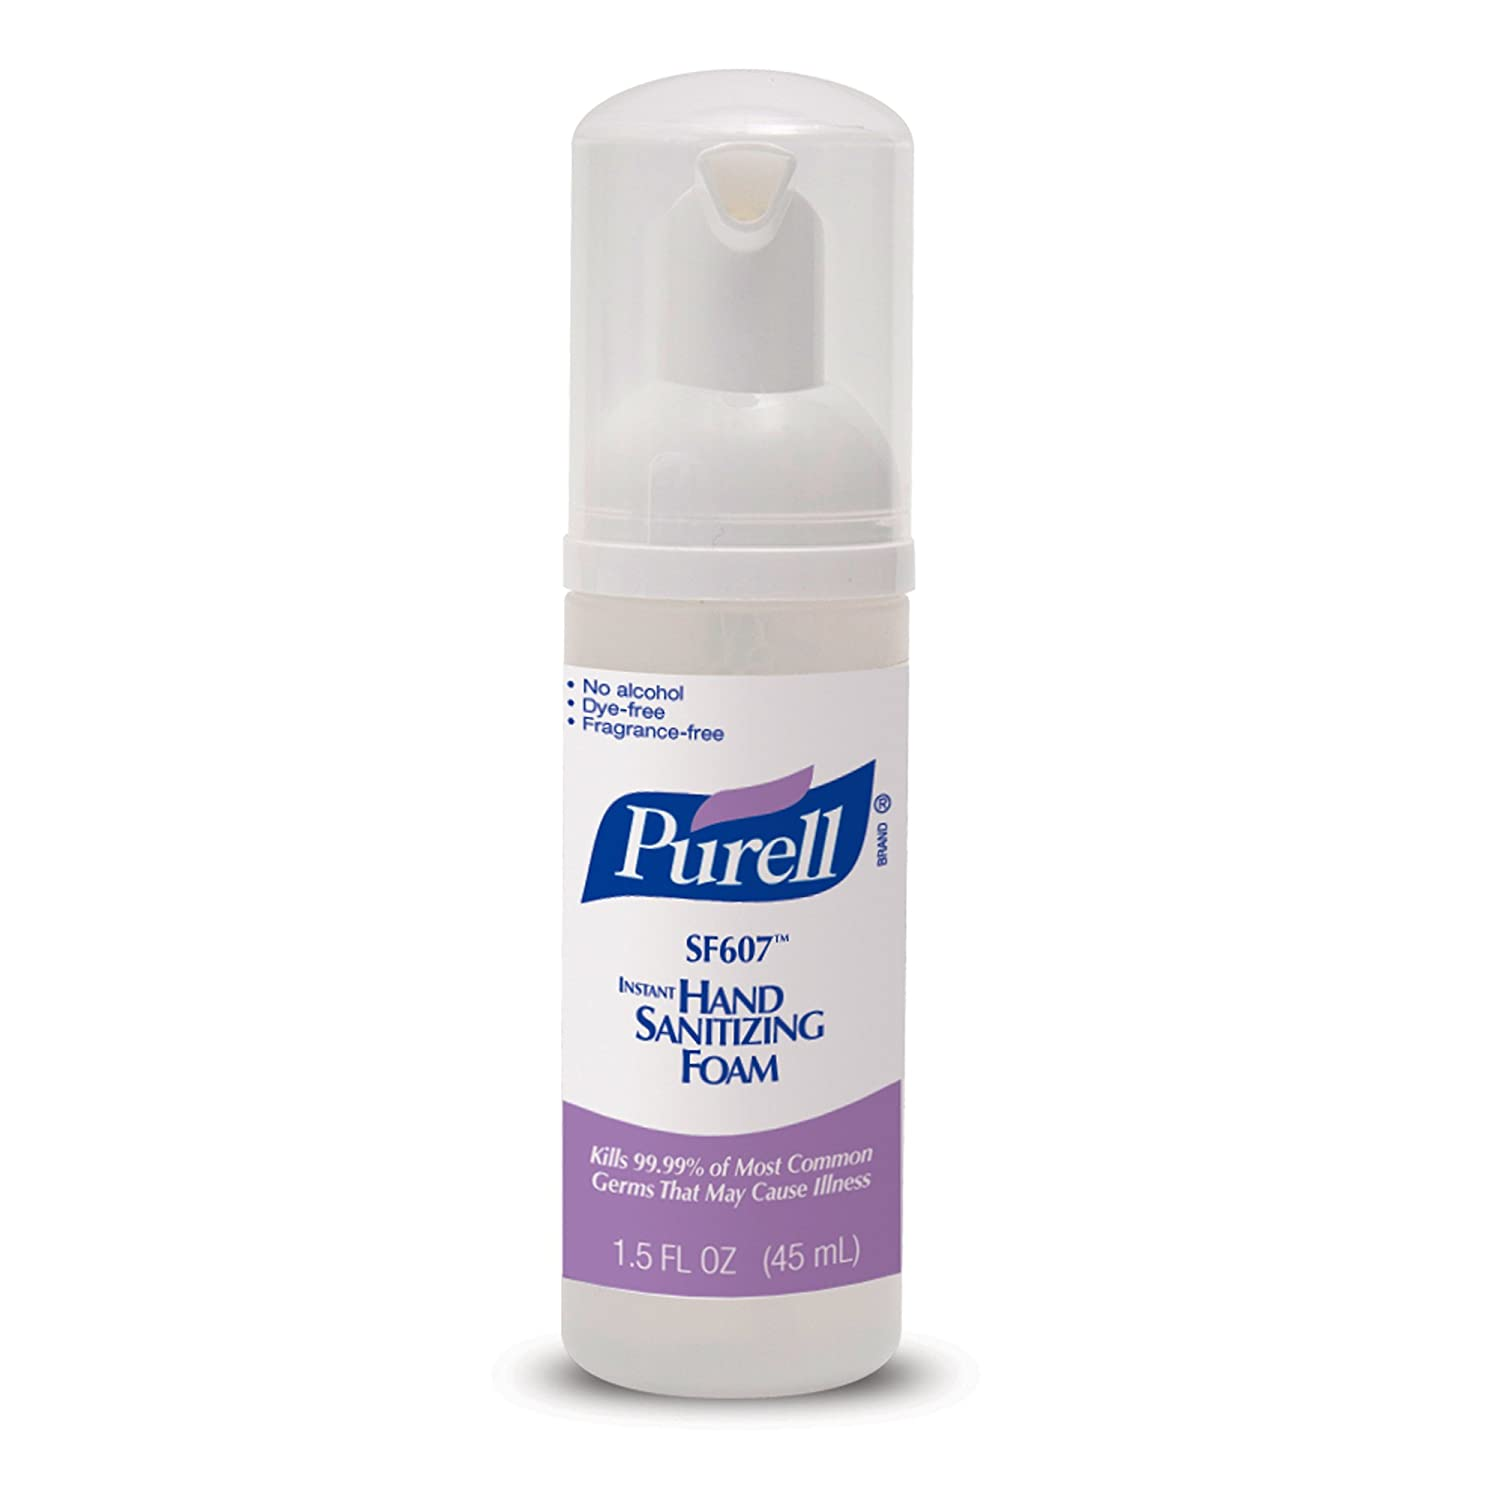 PURELL SF607 Hand Sanitizing Foam, Fragrance and Alcohol Free, 45 mL Hand Sanitizer Portable, Travel Sized Pump Bottle (Pack of 24) - 5684-24